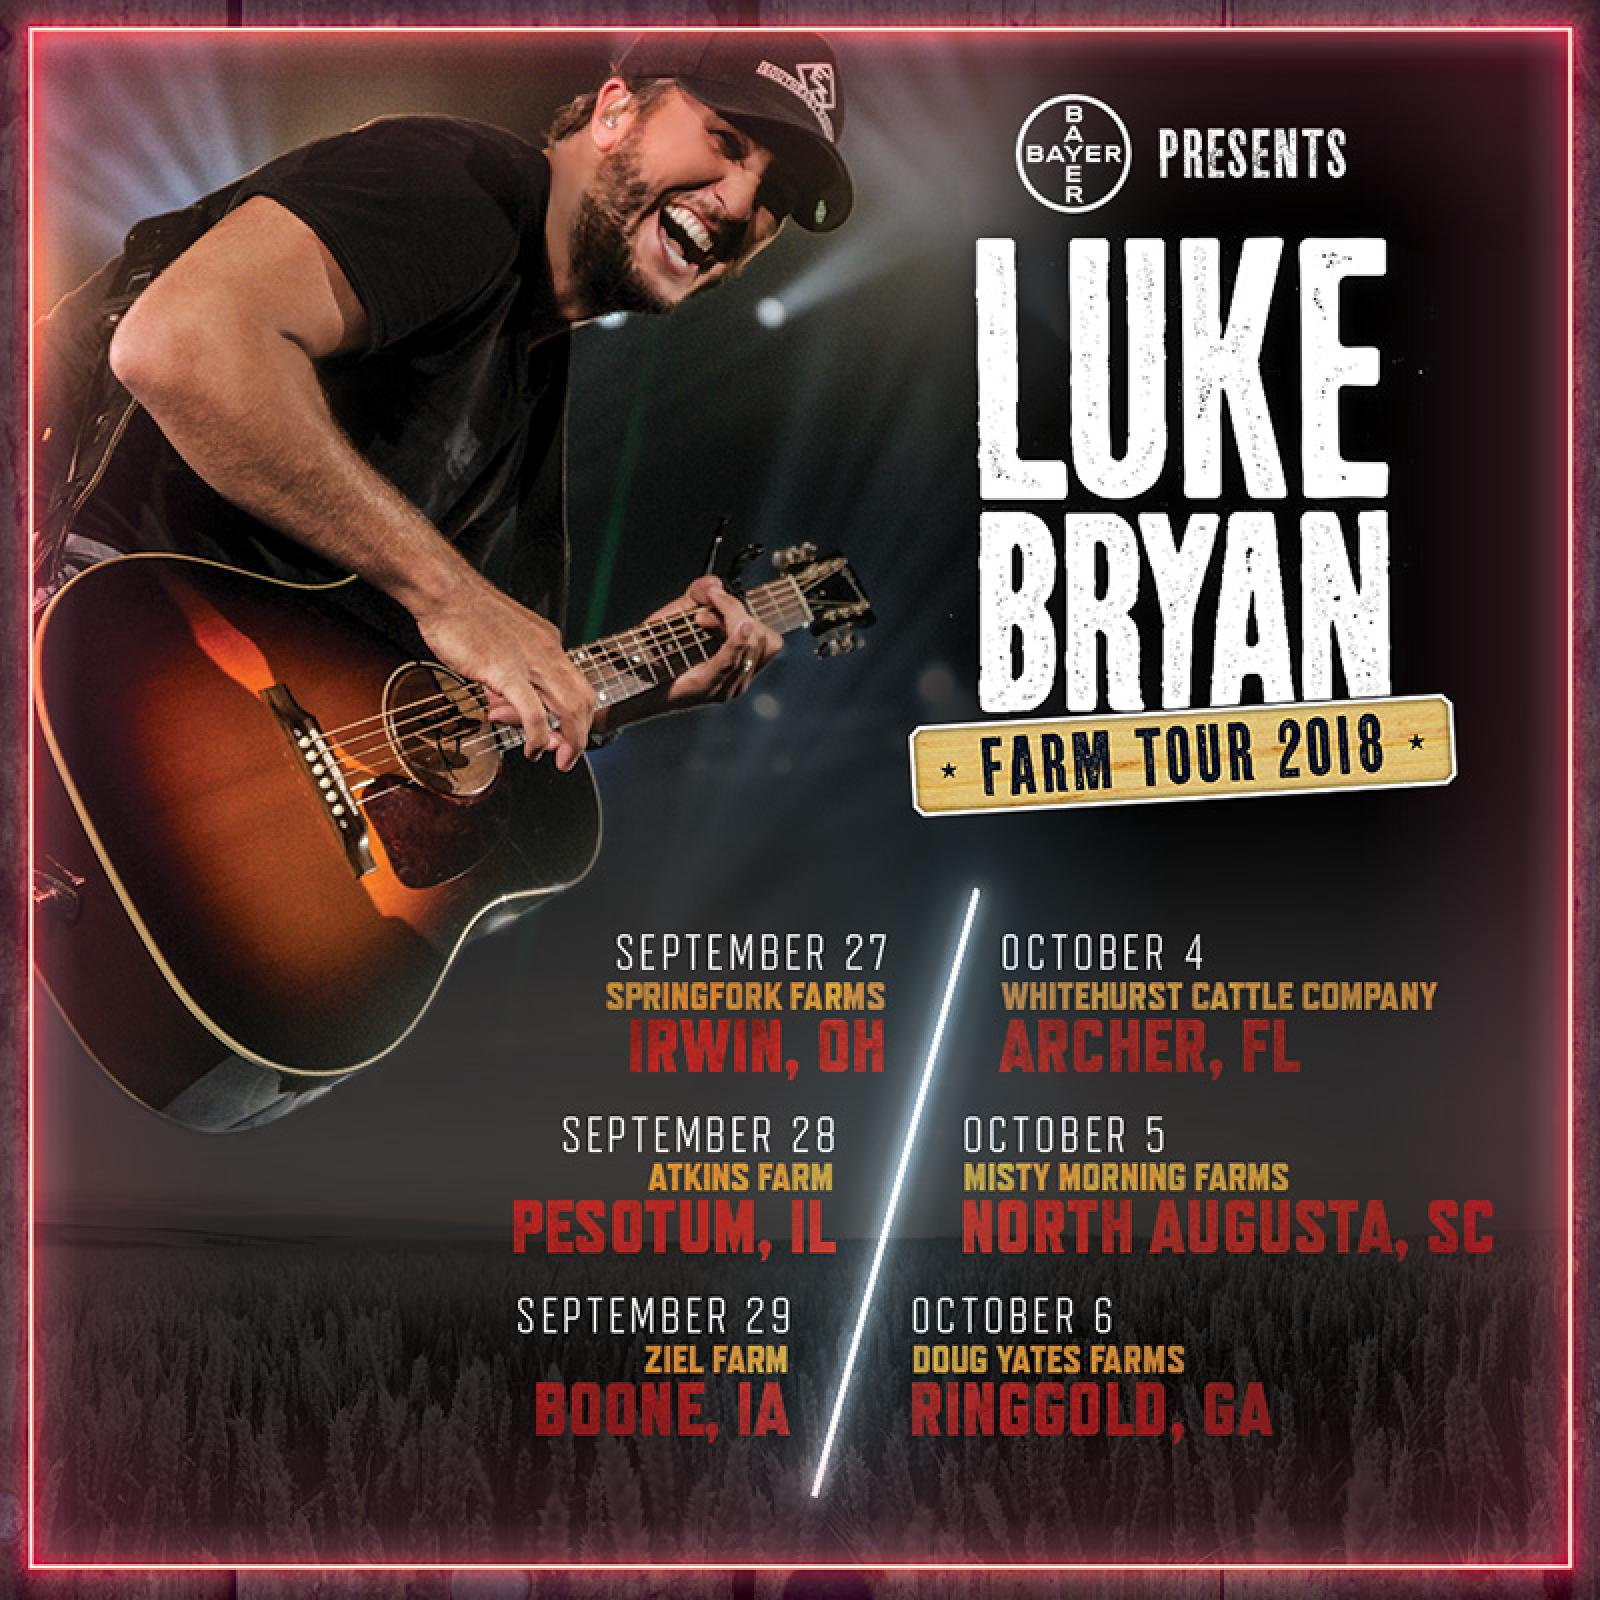 Win luke bryan tickets pittsburgh